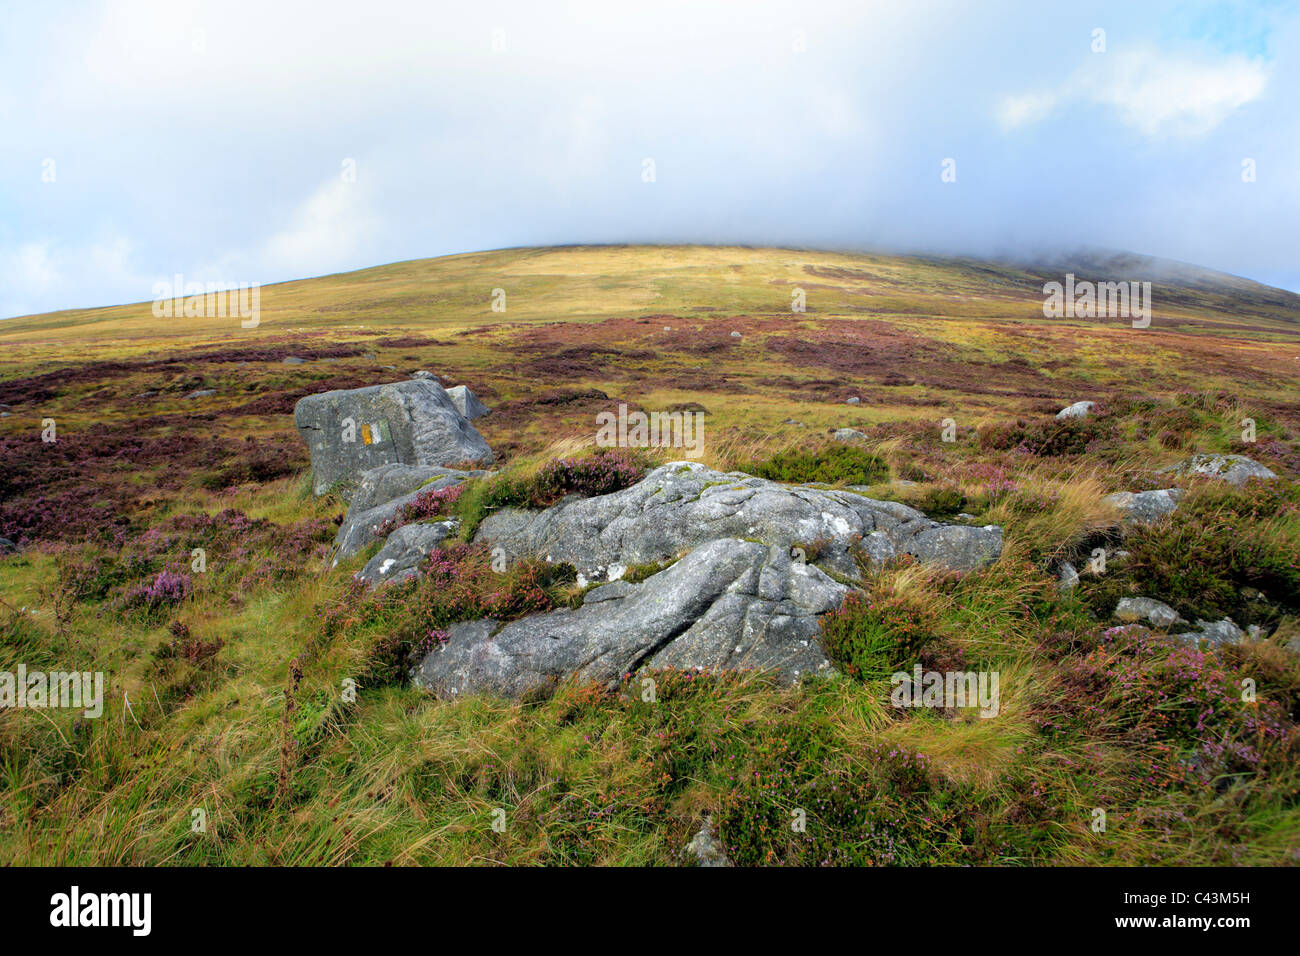 Eire, Europe, European, Ireland, Irish, Western Europe, travel destinations, Landscape, nature, Wicklow mountains, - Stock Image